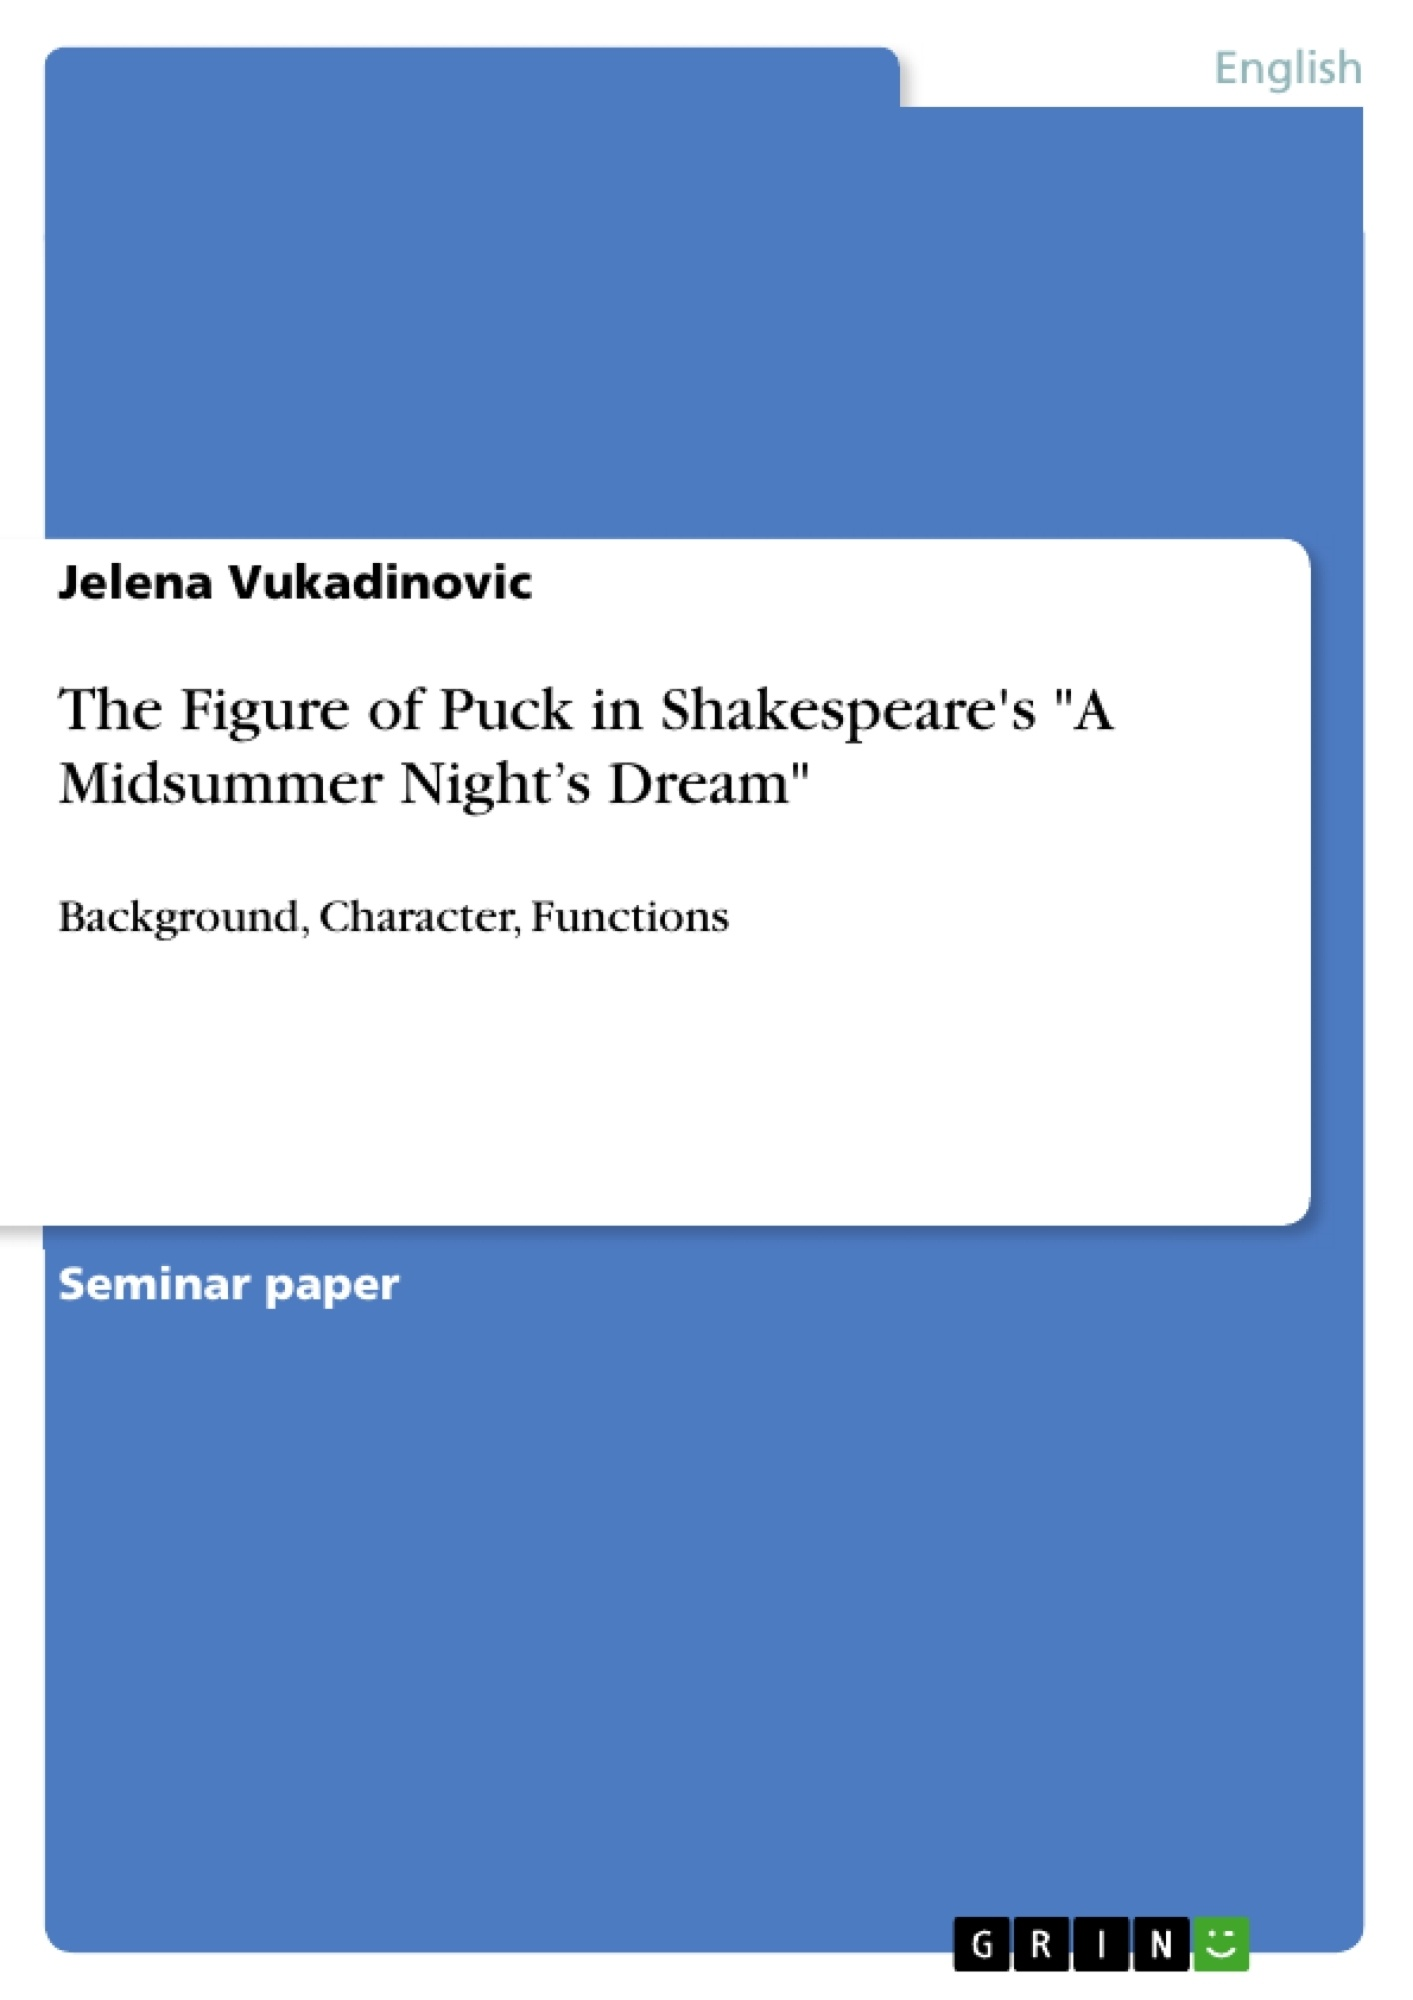 """Title: The Figure of Puck in Shakespeare's """"A Midsummer Night's Dream"""""""